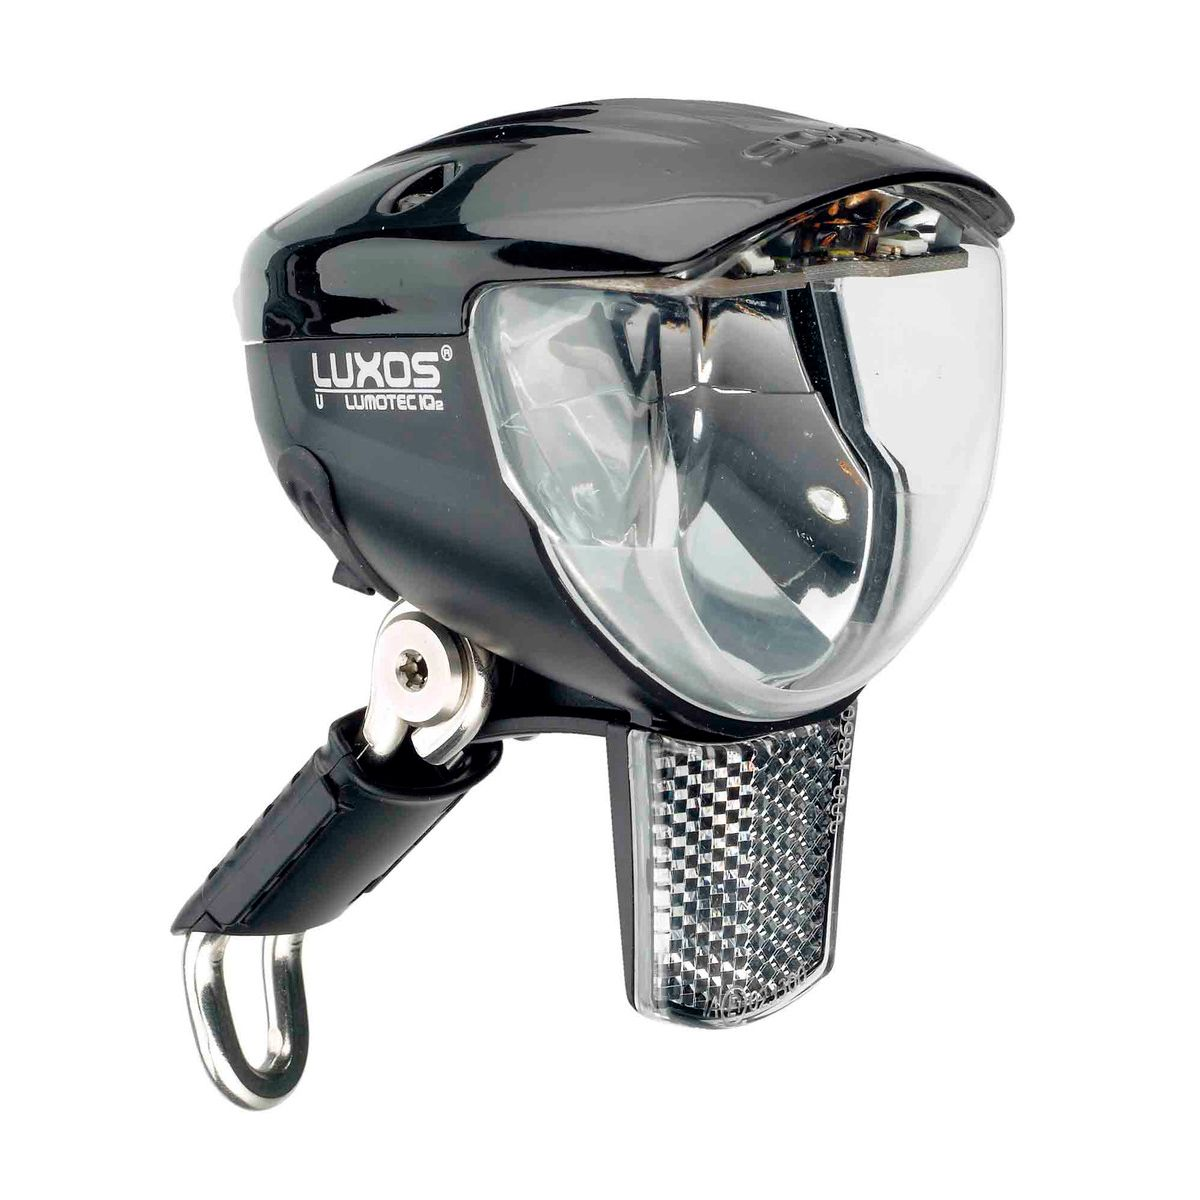 B + M Lumotec IQ2 Luxos U senso plus headlight with USB connection | Hjelmlygter